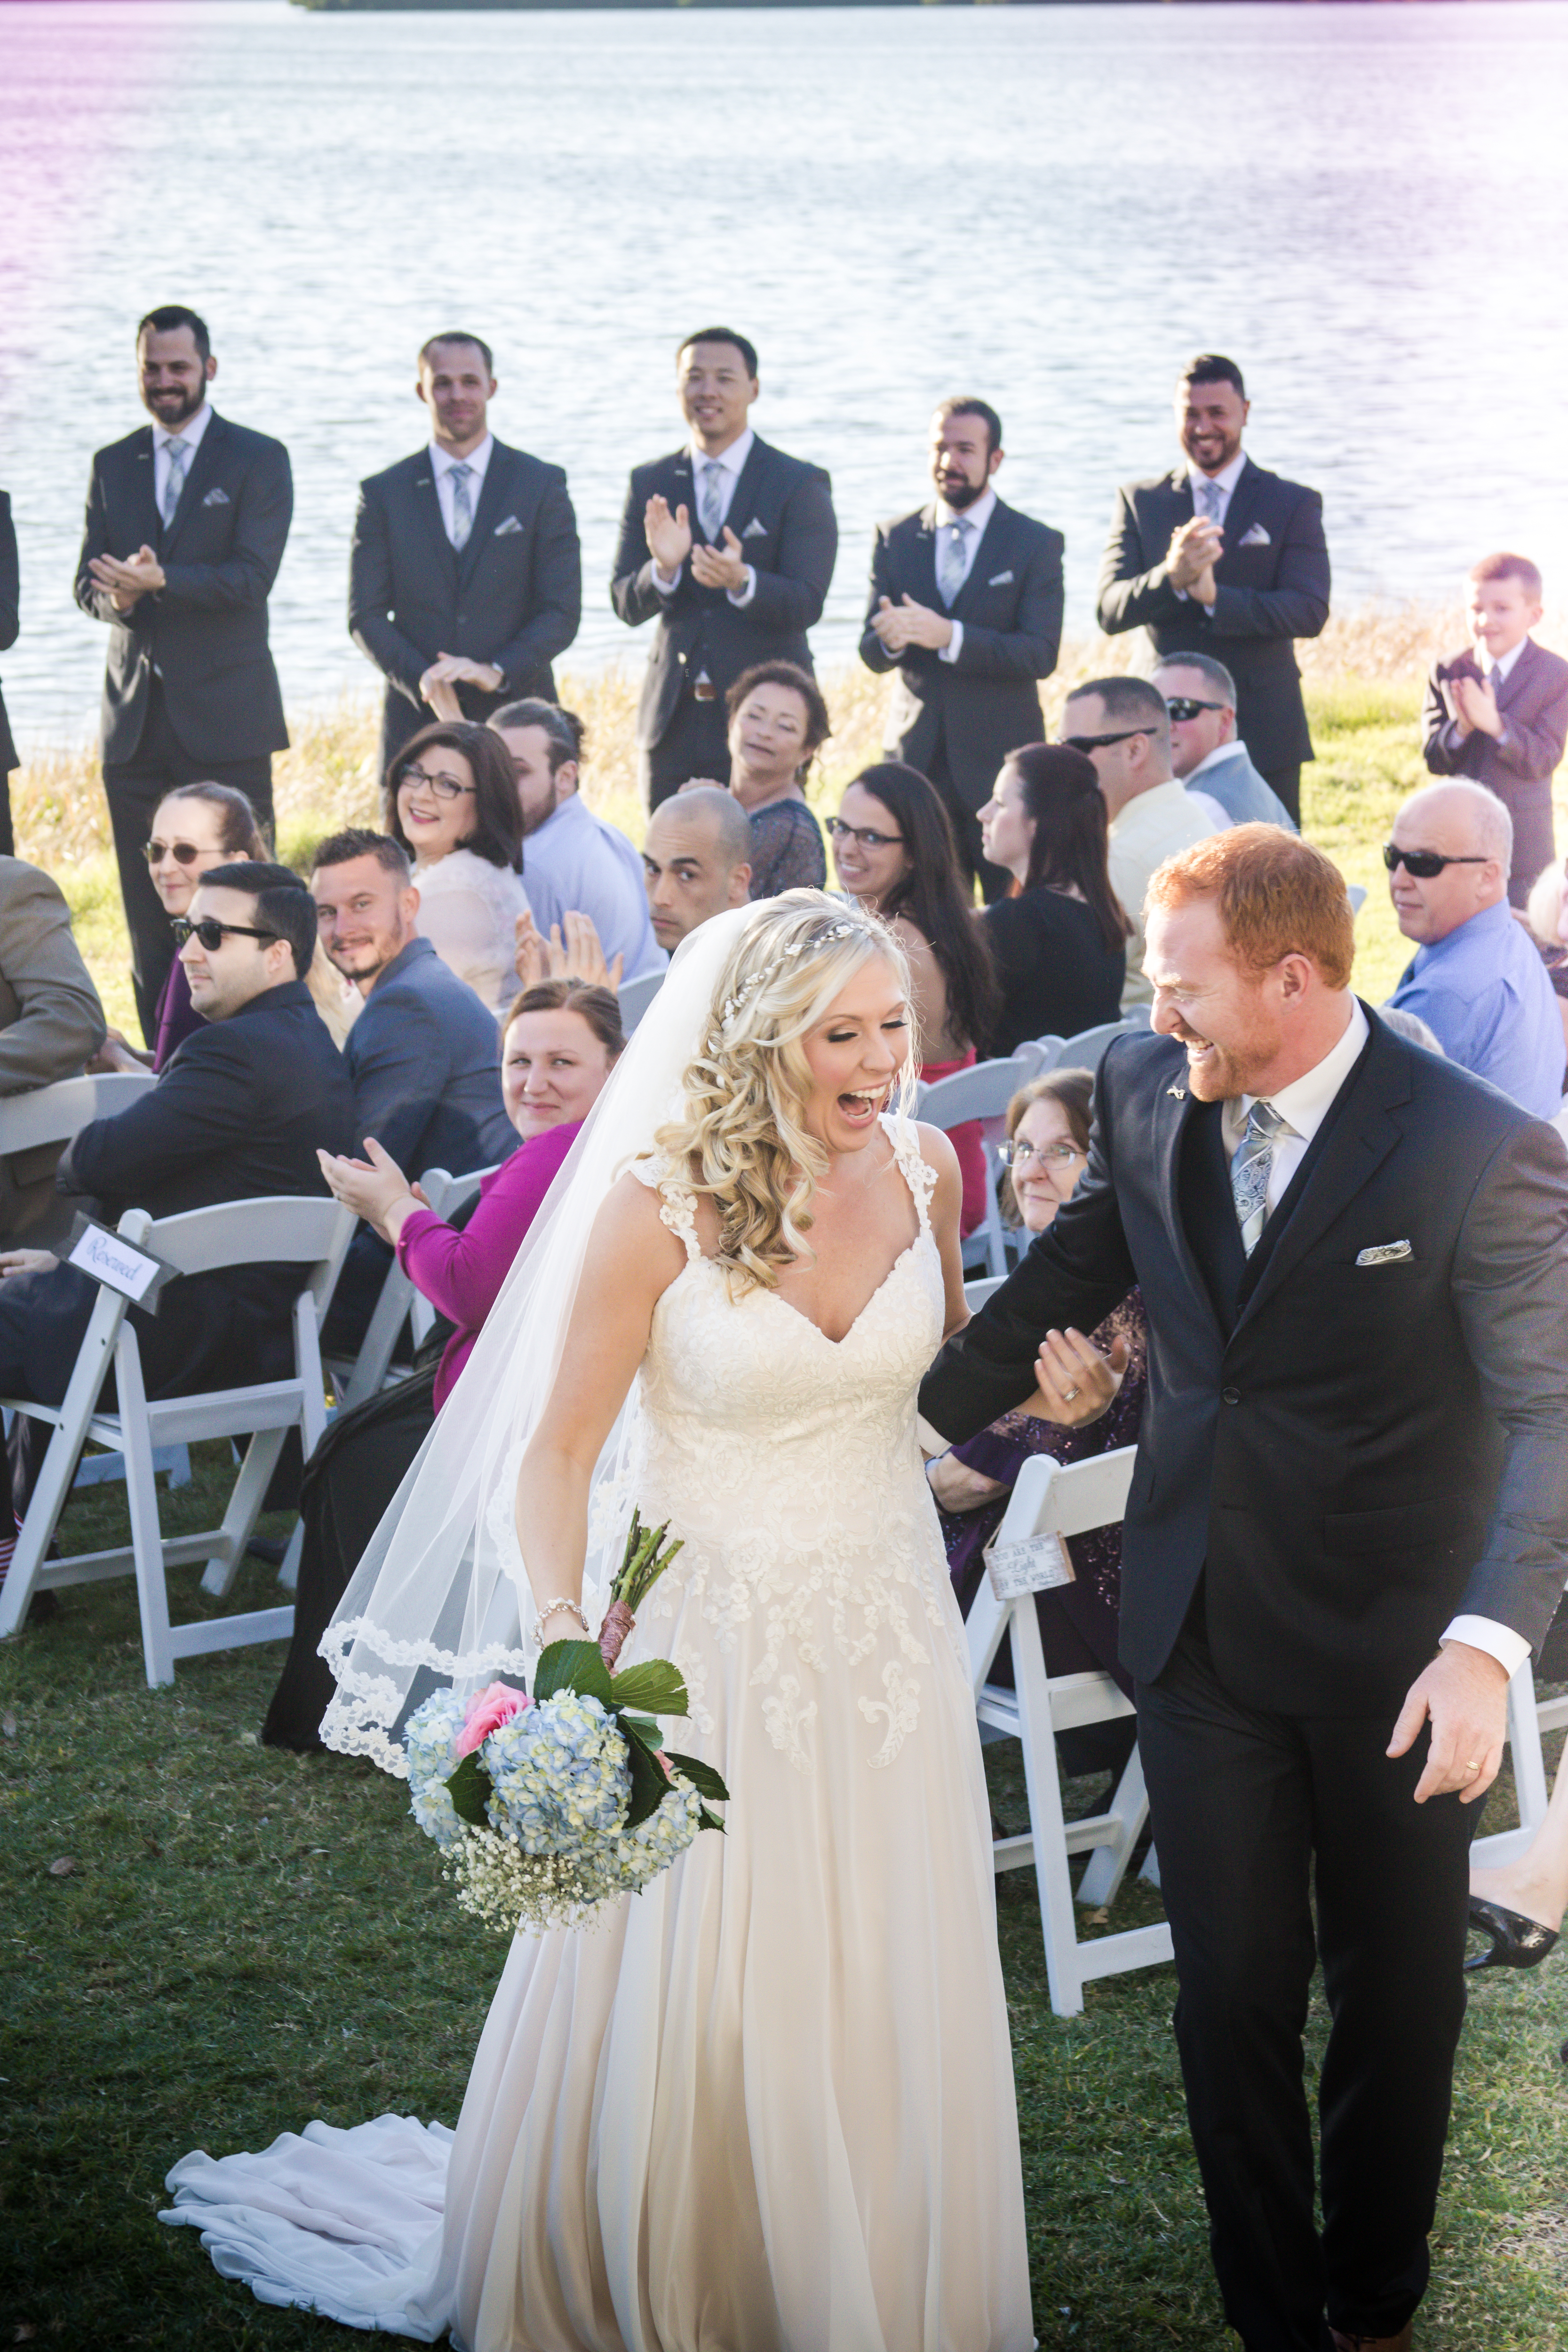 the best day ever mindy kerr photography